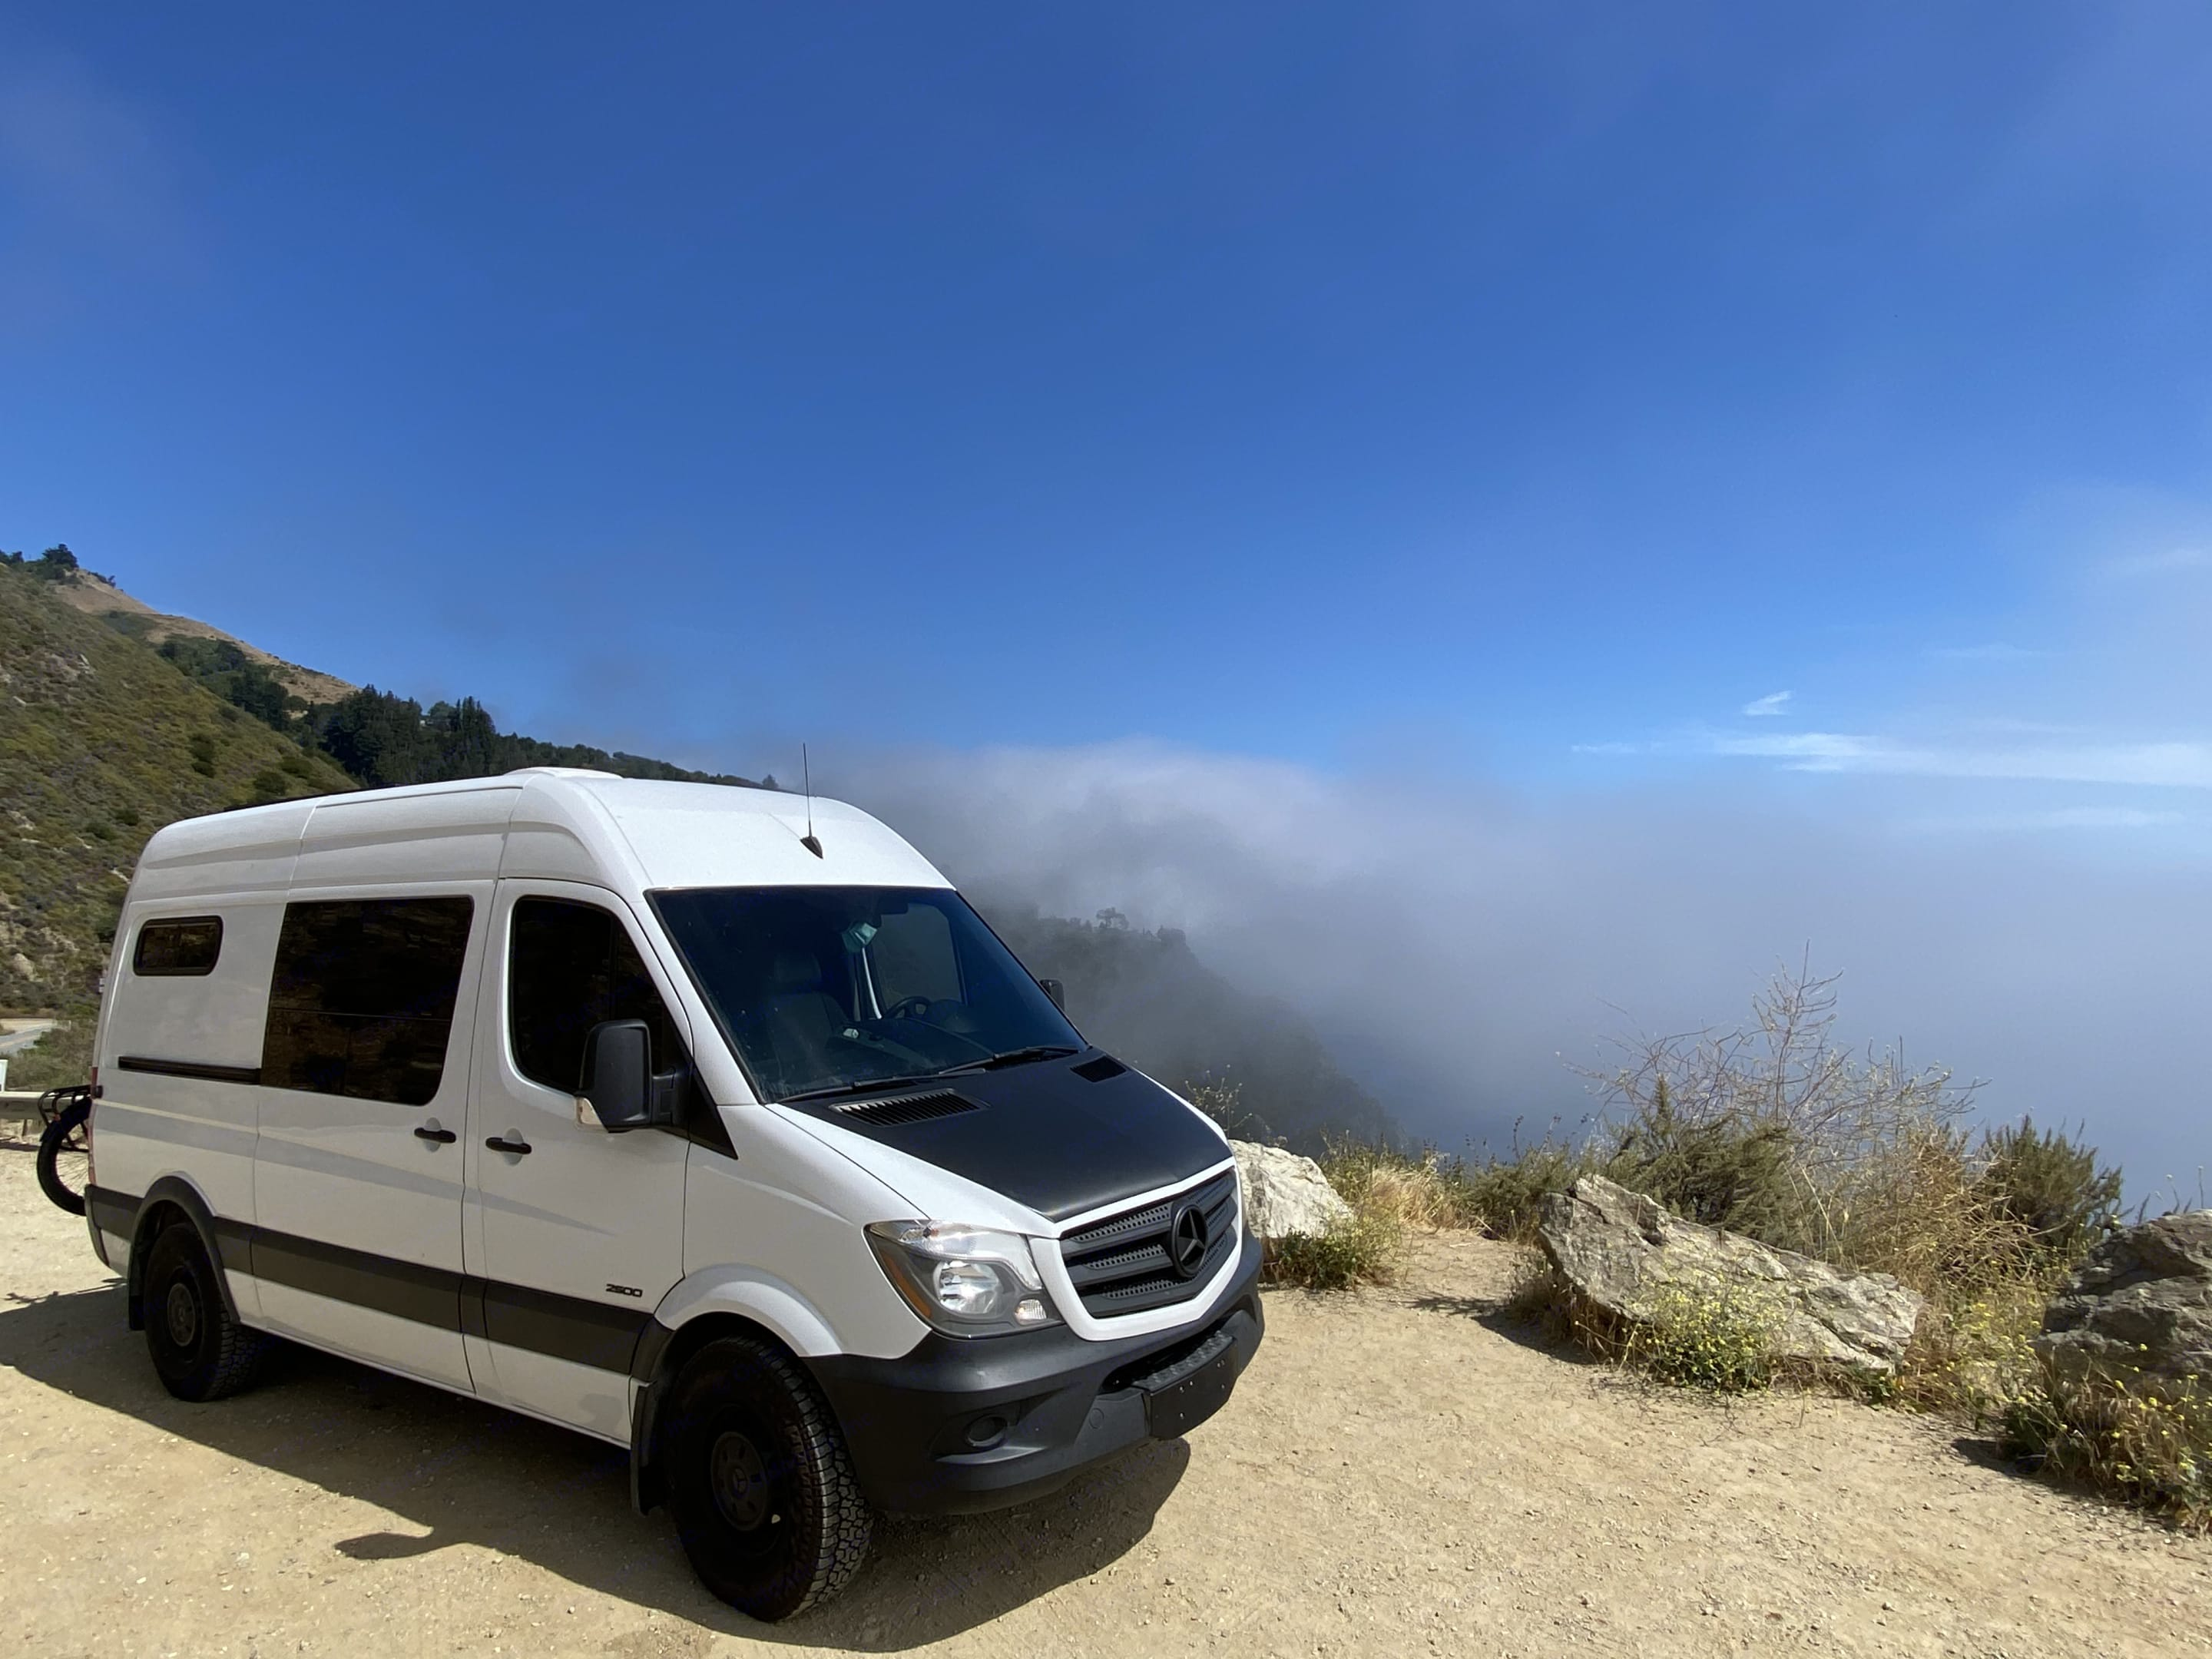 Watching the fog roll in over the cliffs in Big Sur. Mercedes Sprinter 2015